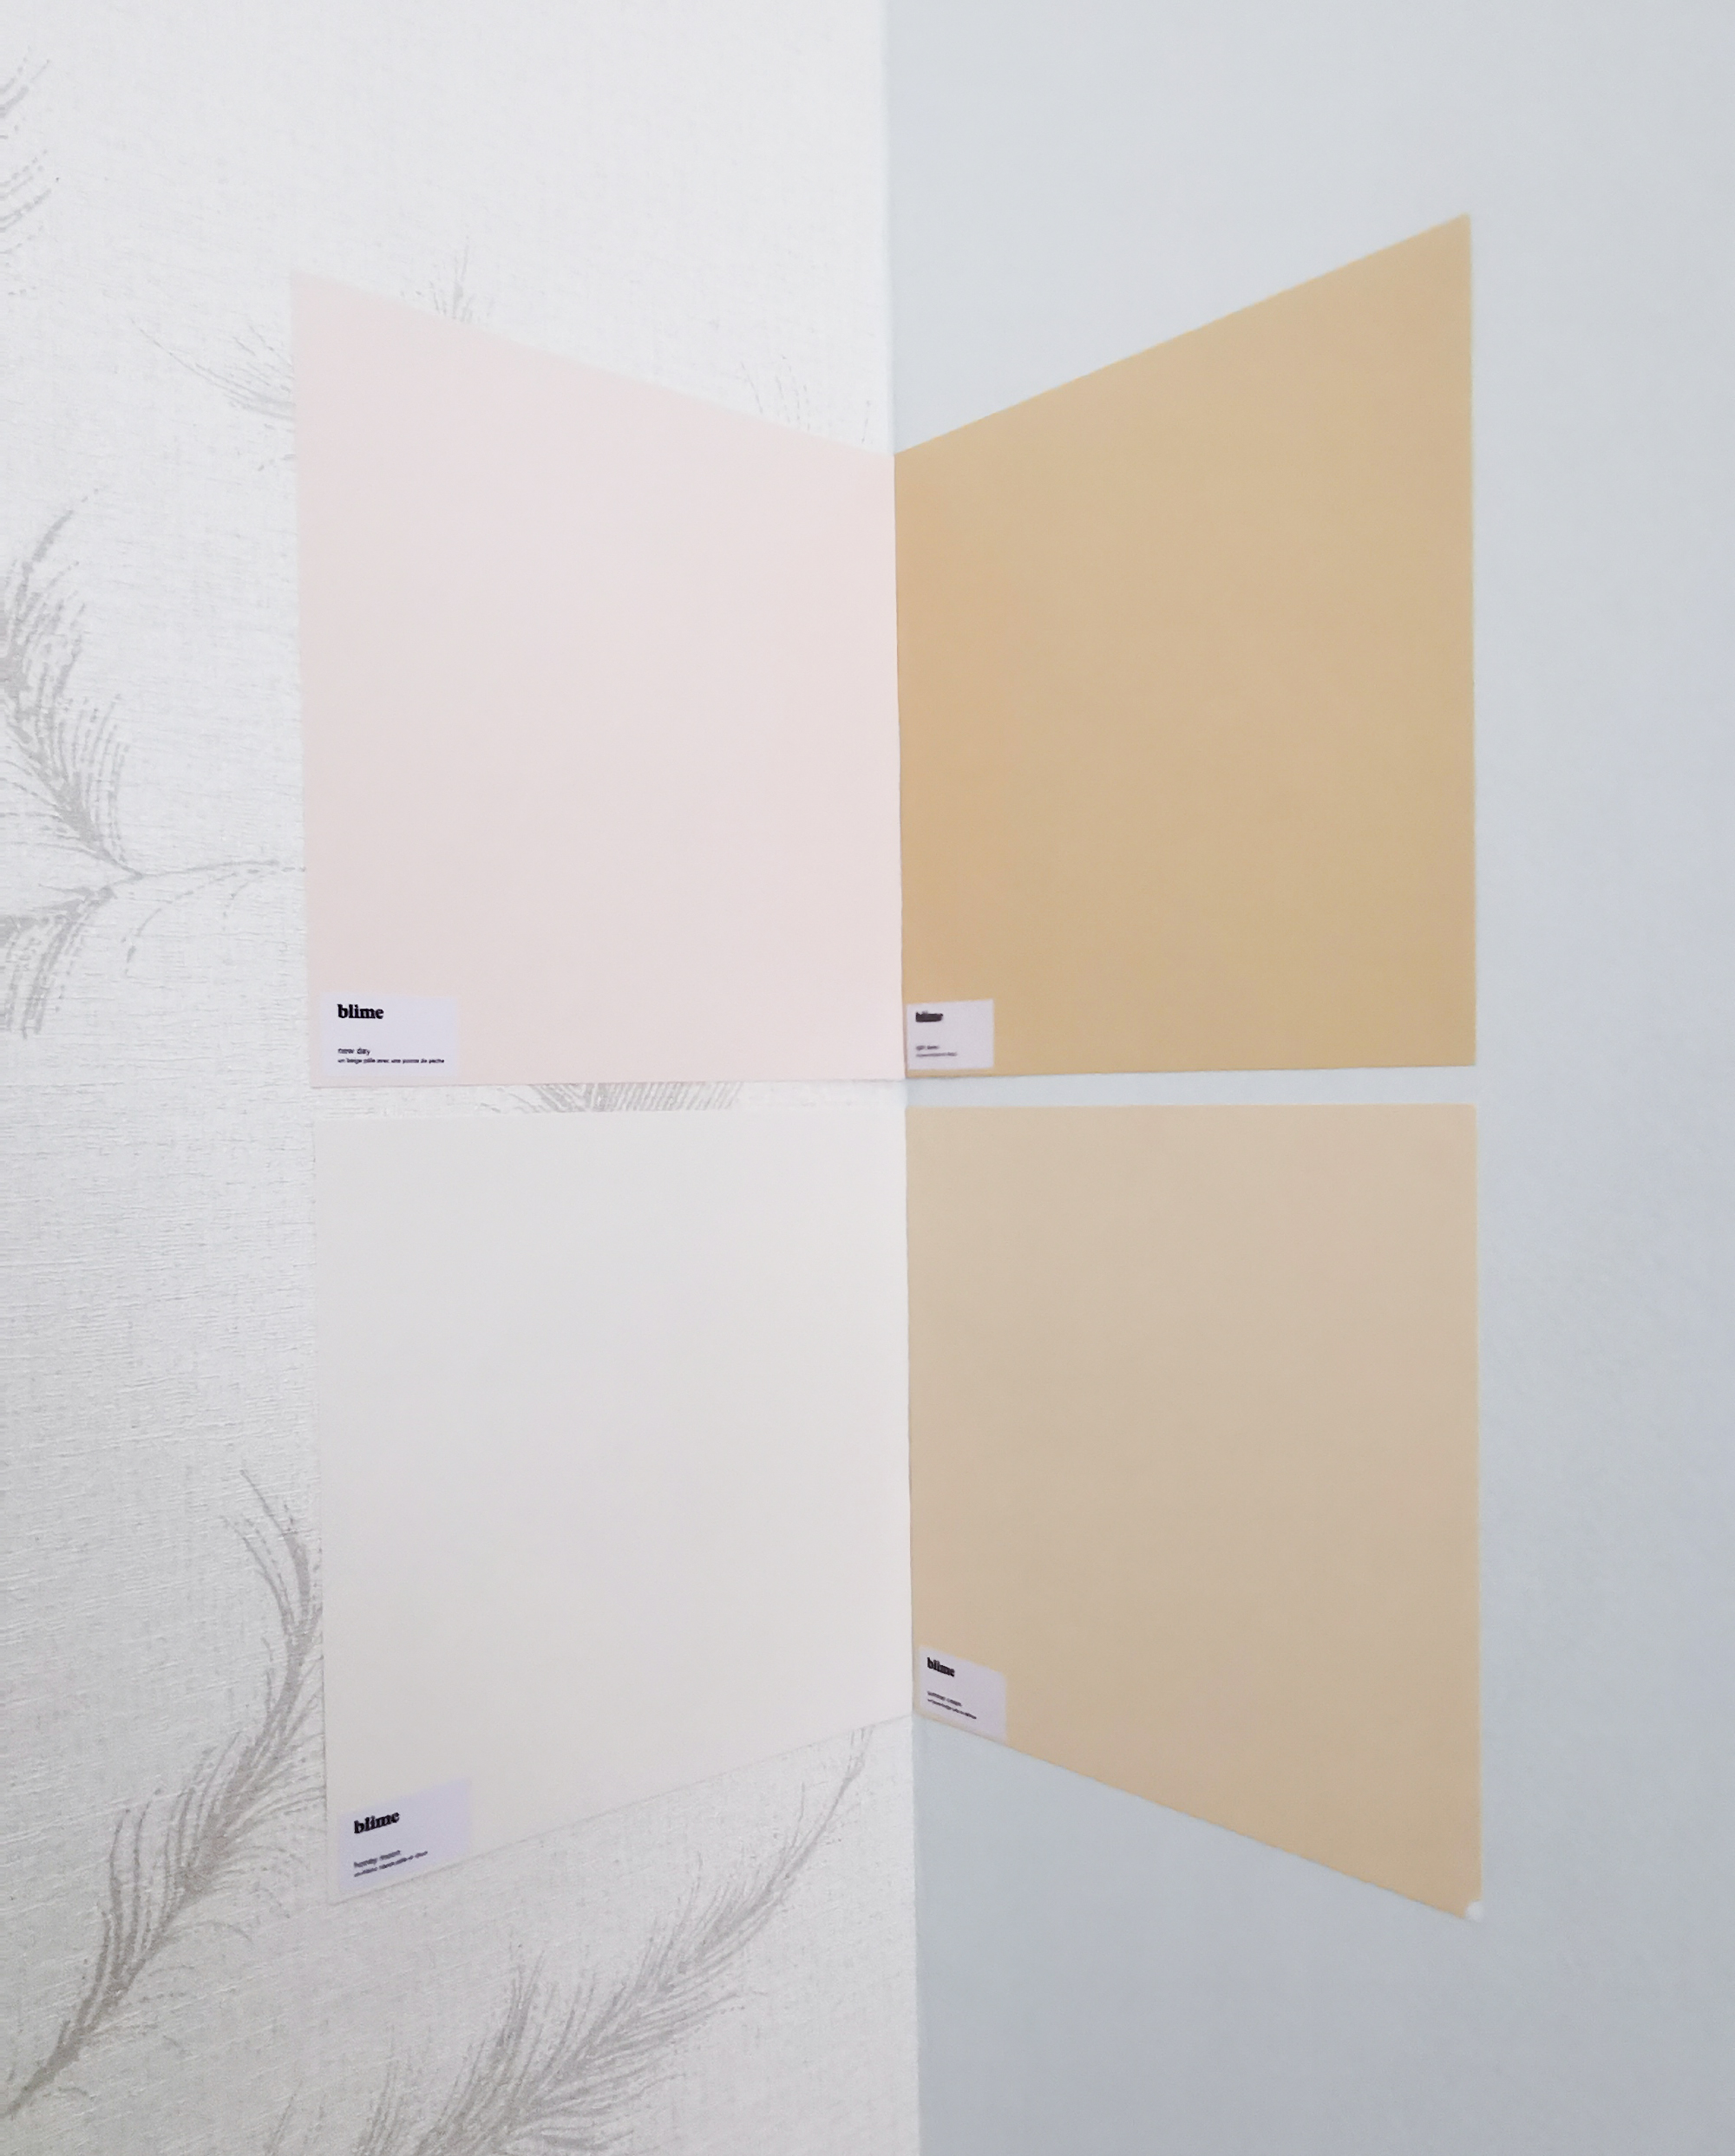 JOELIX.com | Summer Cream in the bedroom paint by Blime